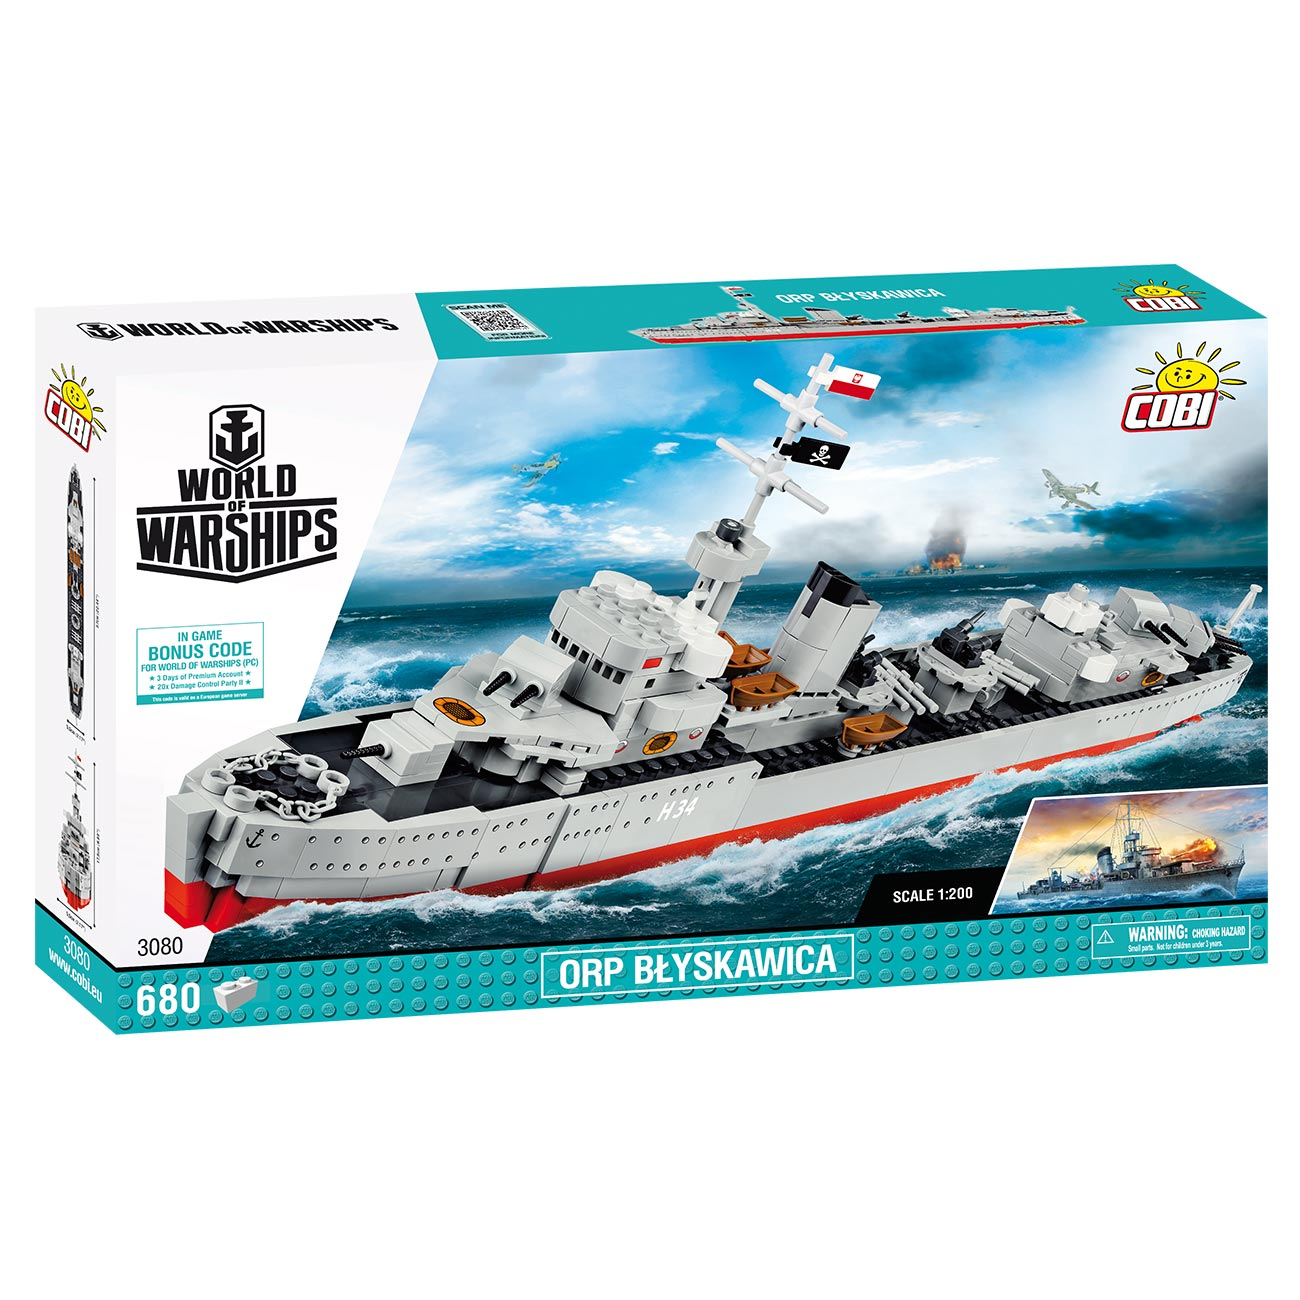 Cobi World of Warships Small Army Bausatz Schiff Orp Blyskawica 680 Teile 3080 1